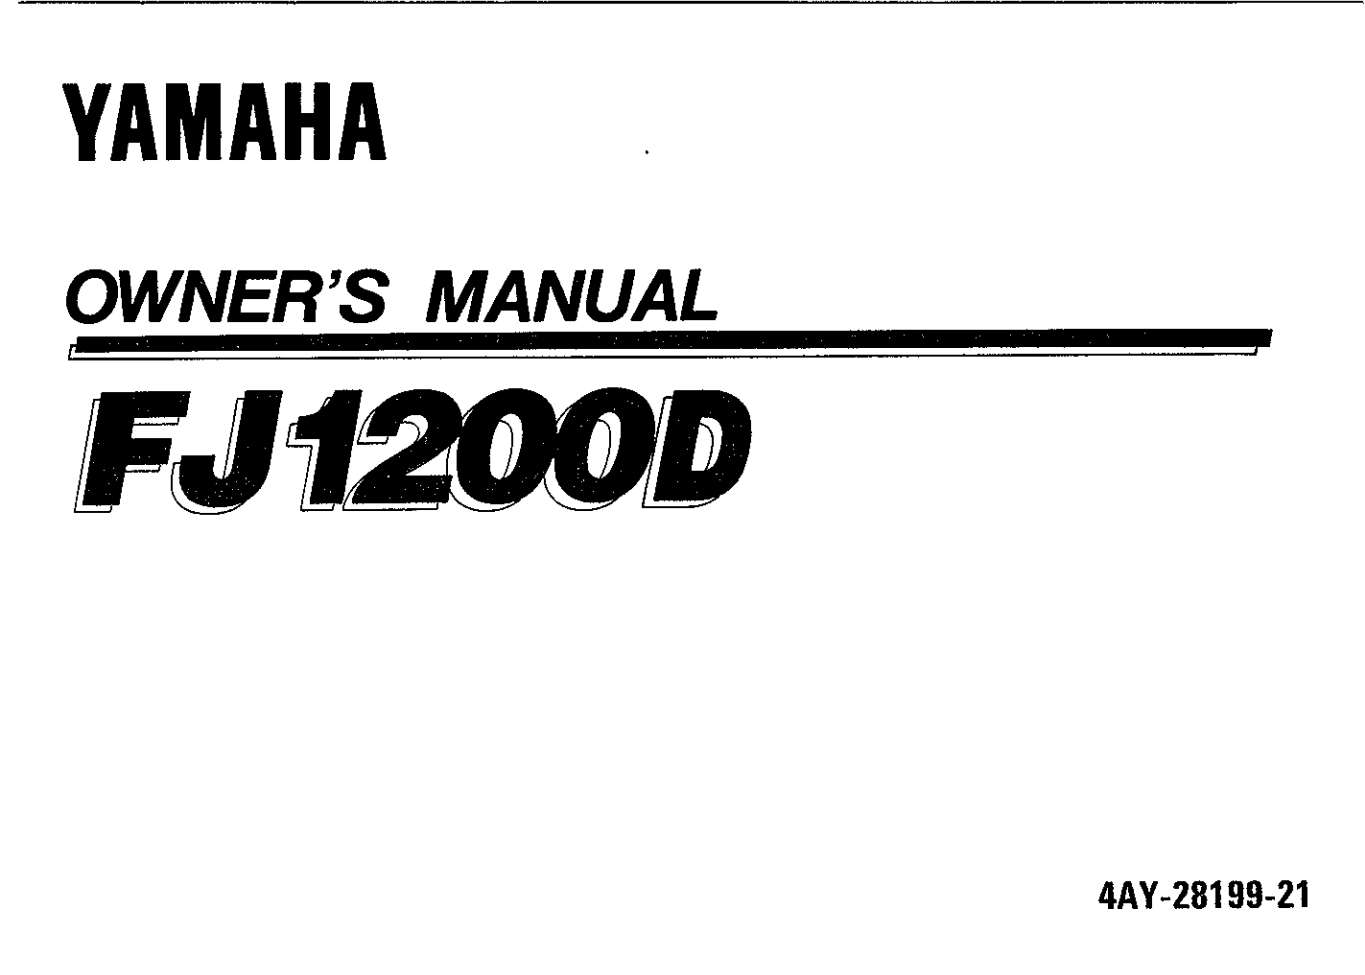 Yamaha FJ1200 D 1992 Owner's Manual